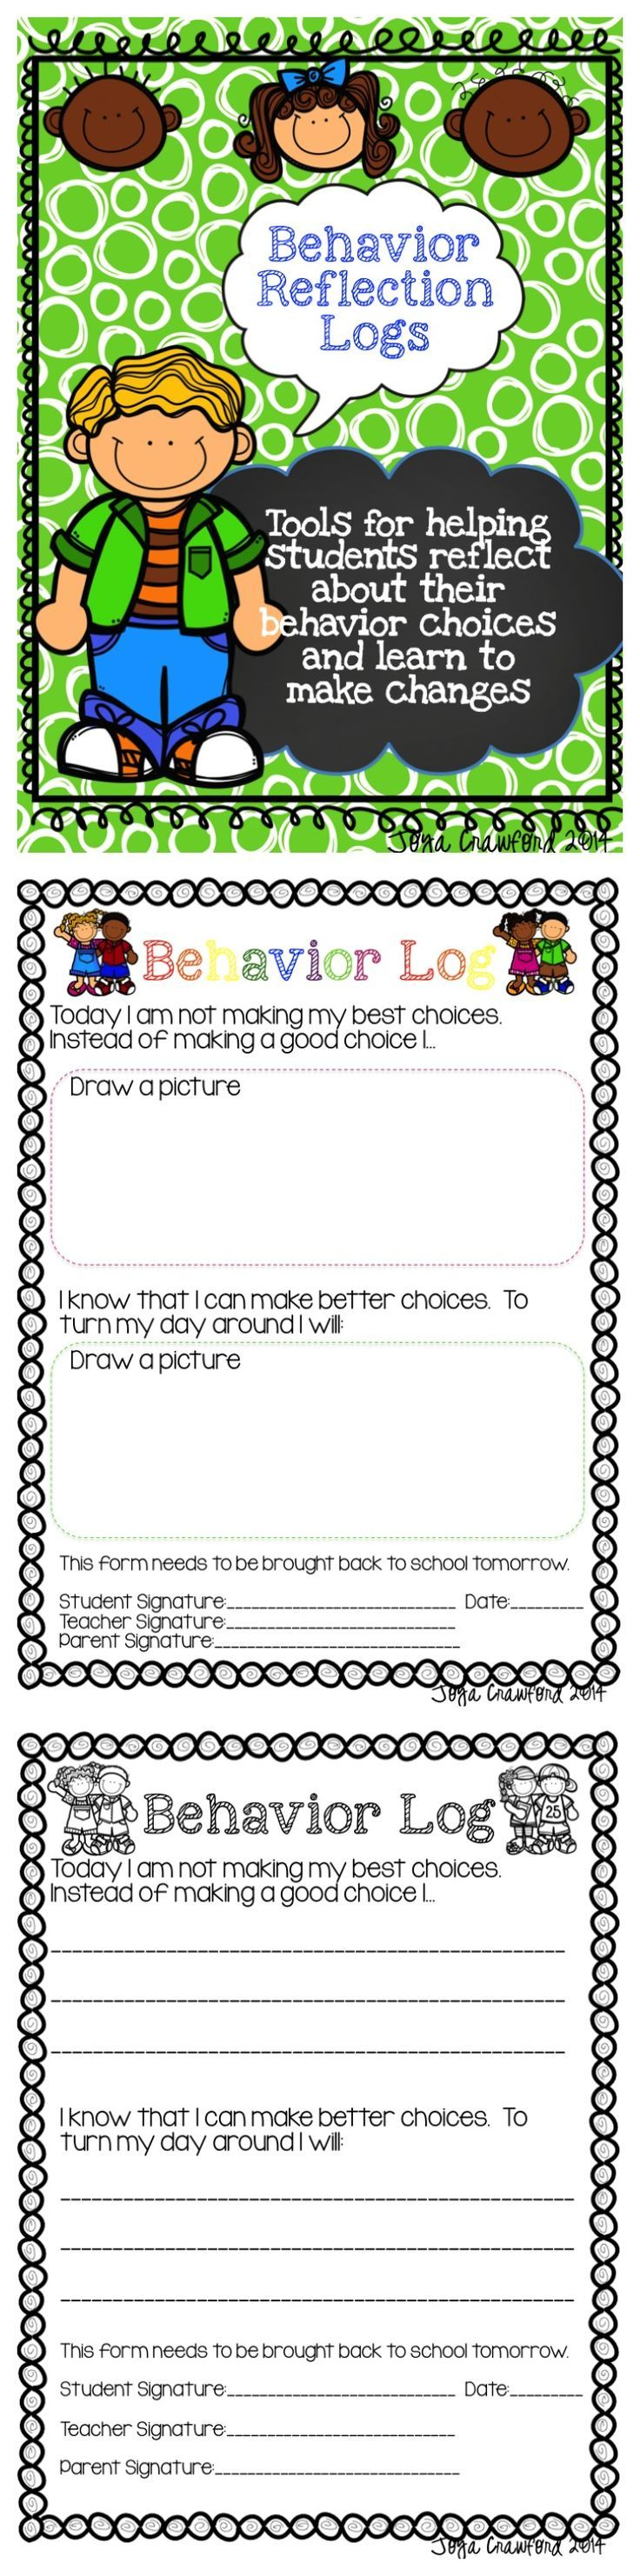 Looking for effective behavior reflection logs that help students reflect about their behavior in a meaningful way? Included are an early primary version where students draw pictures of what happened to reflect on their choices and a later primary version where students write what happened as they reflect upon their behavior choices. There are color and black and white versions of each.